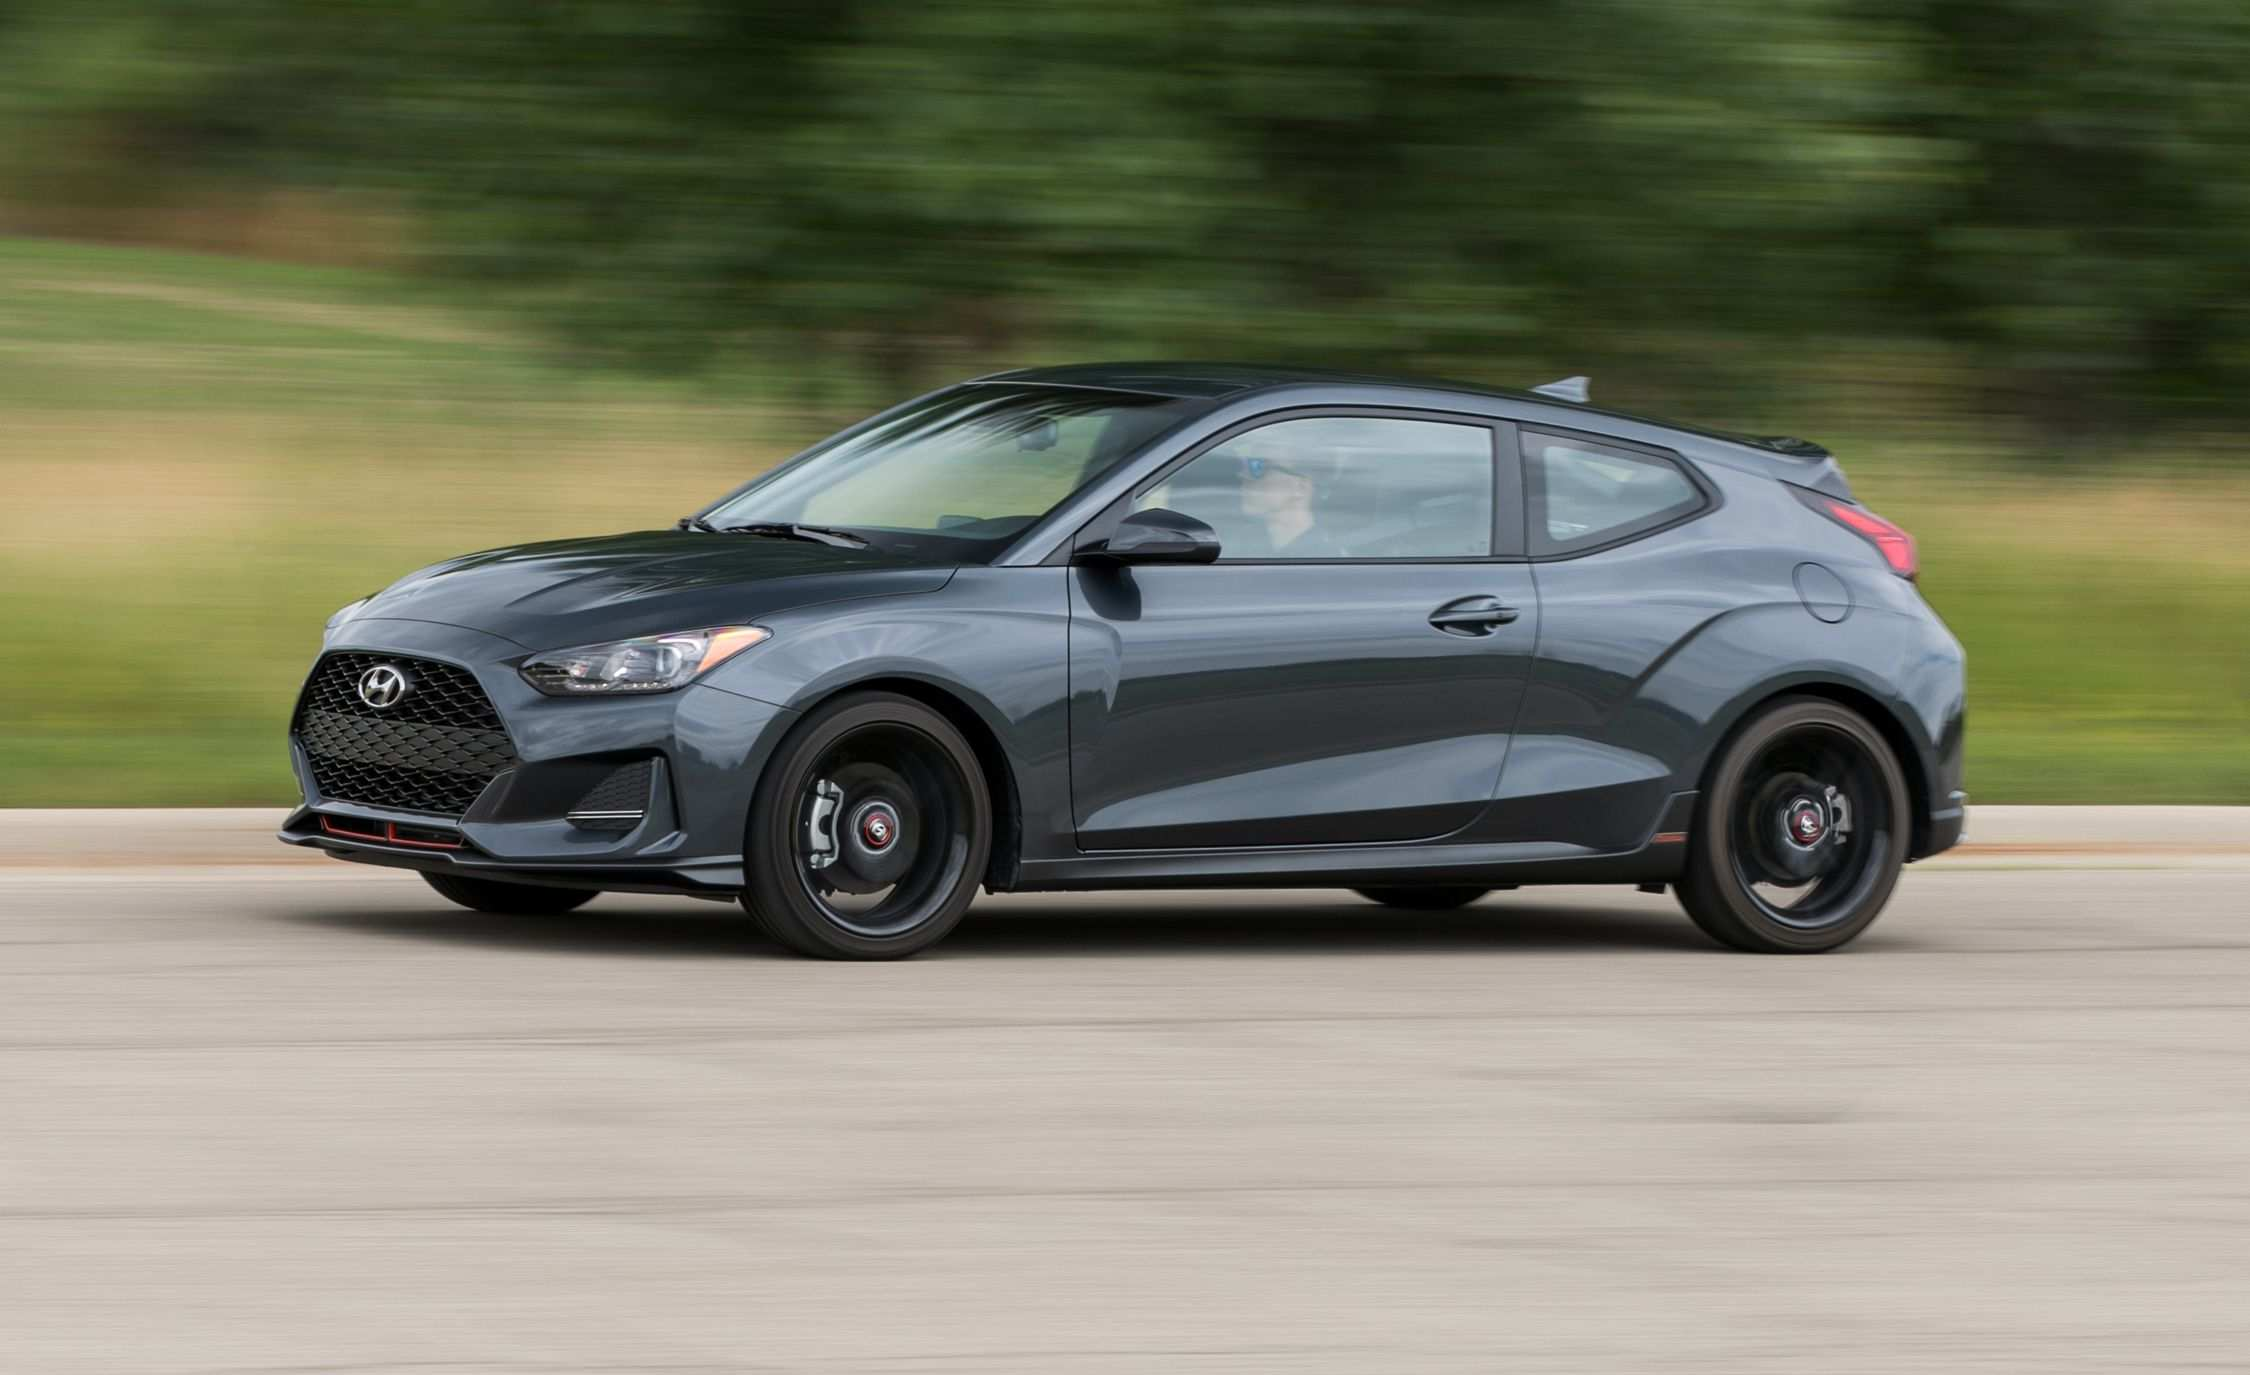 91 Best Review 2019 Hyundai Veloster Turbo Review Performance and New Engine for 2019 Hyundai Veloster Turbo Review